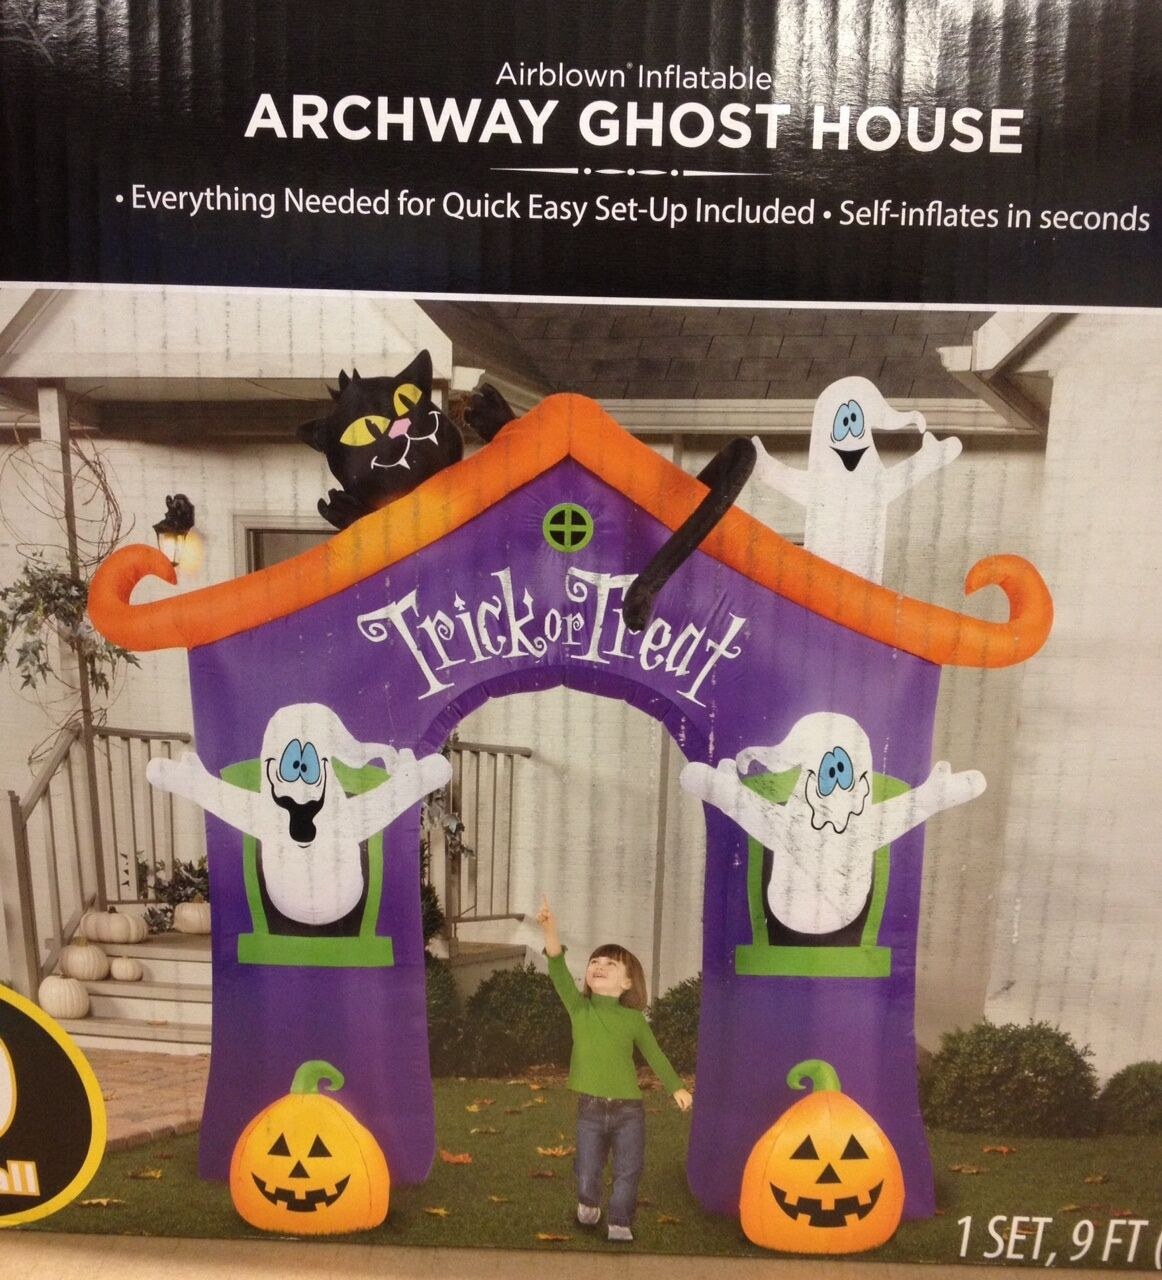 Trick Or Treat Ghost House Archway Airblown Inflatable Gemmy Halloween Yard Prop